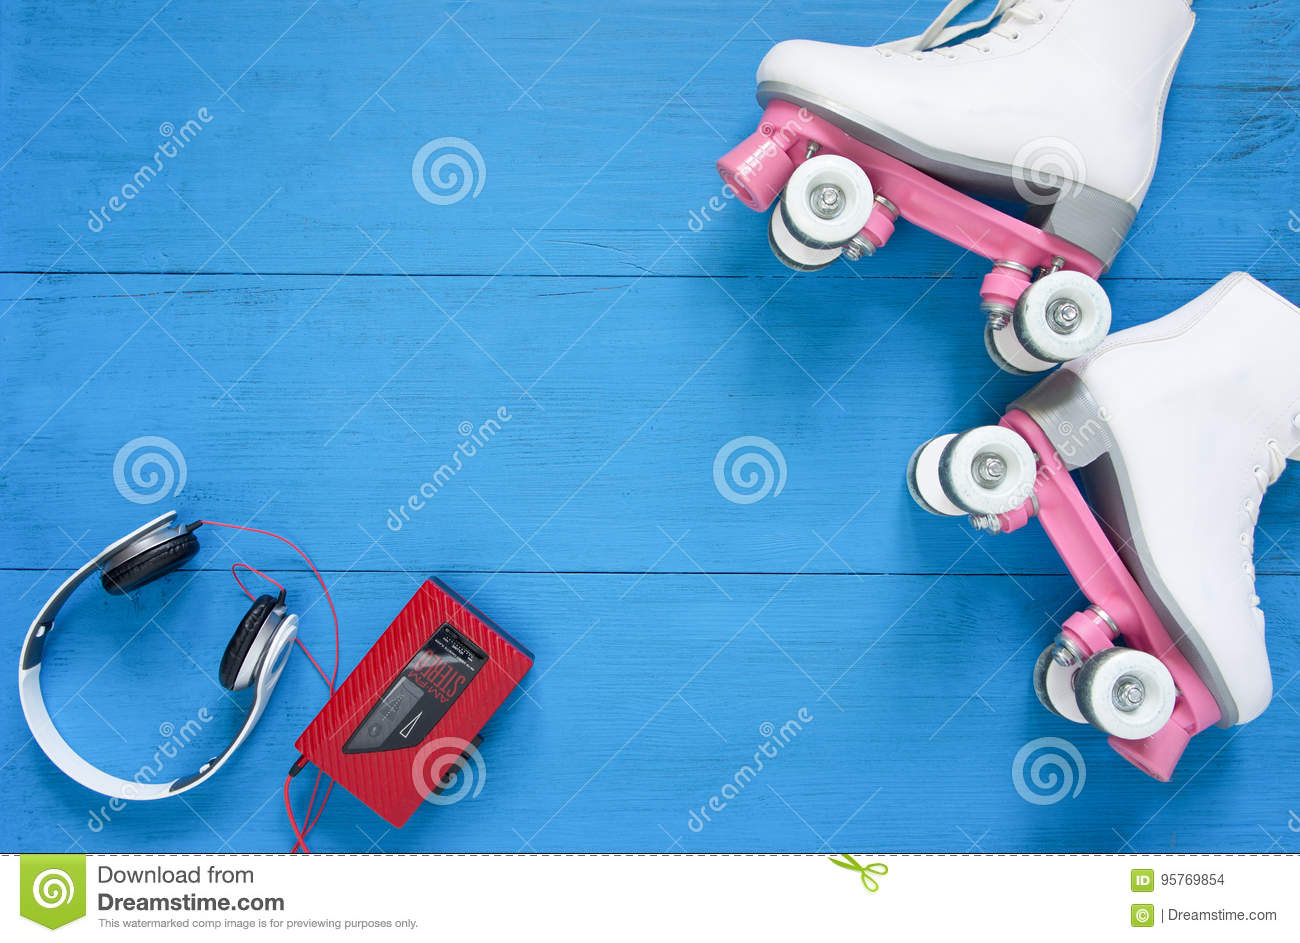 Download Sport, Healthy Lifestyle, Roller Skating Background. White Roller Skates, Headphones And Vintage Tape Player. Flat Lay, Top View. Stock Photo - Image of sporty, vintage: 95769854